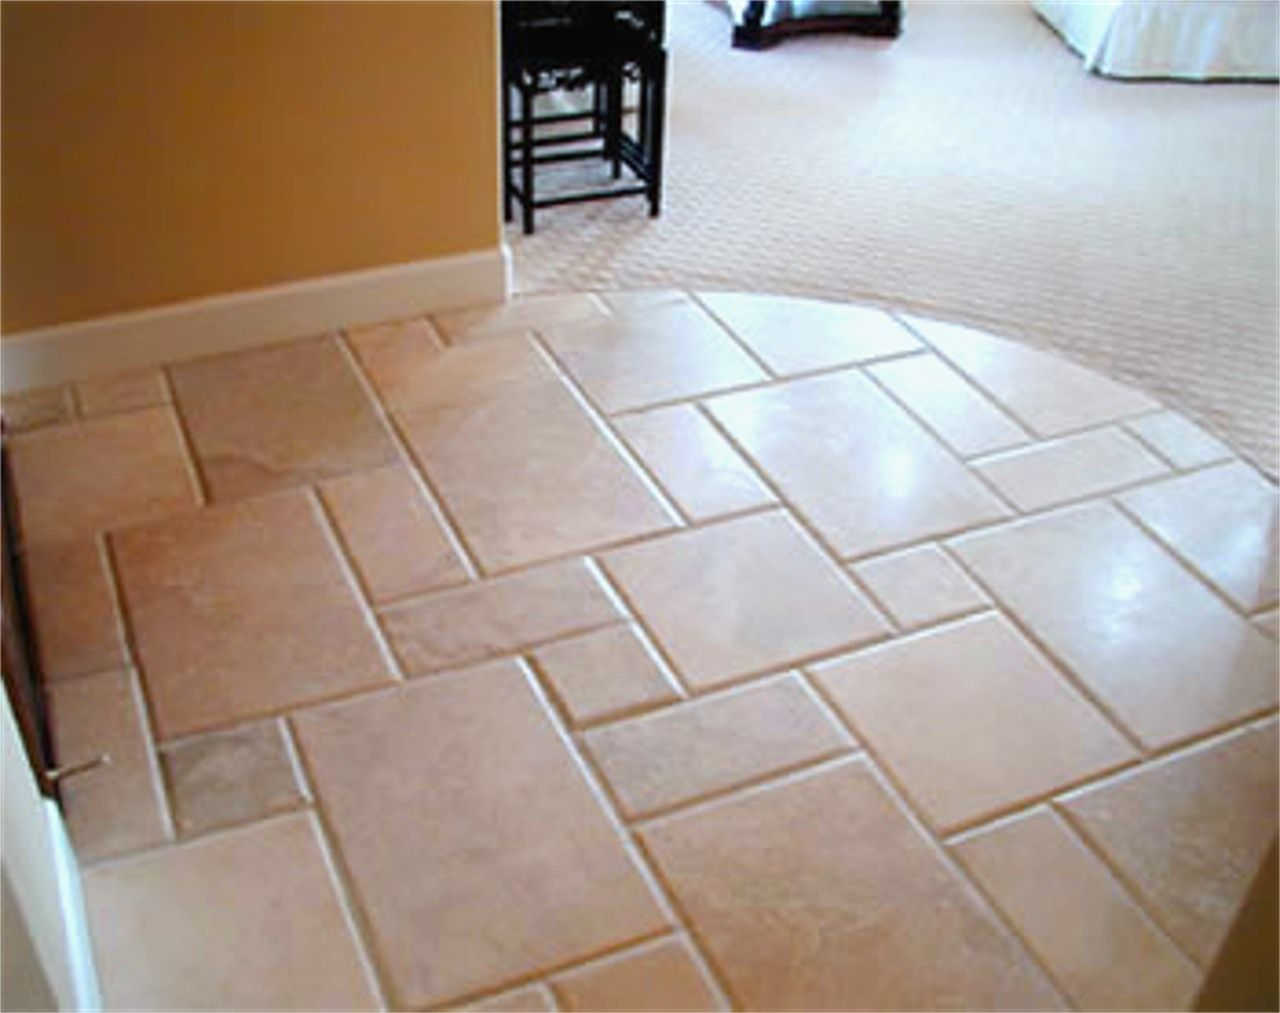 Porcelain tile ceramic porcelain tile flooring burbank porcelain tile ceramic porcelain tile flooring burbank glendale la canada dailygadgetfo Image collections